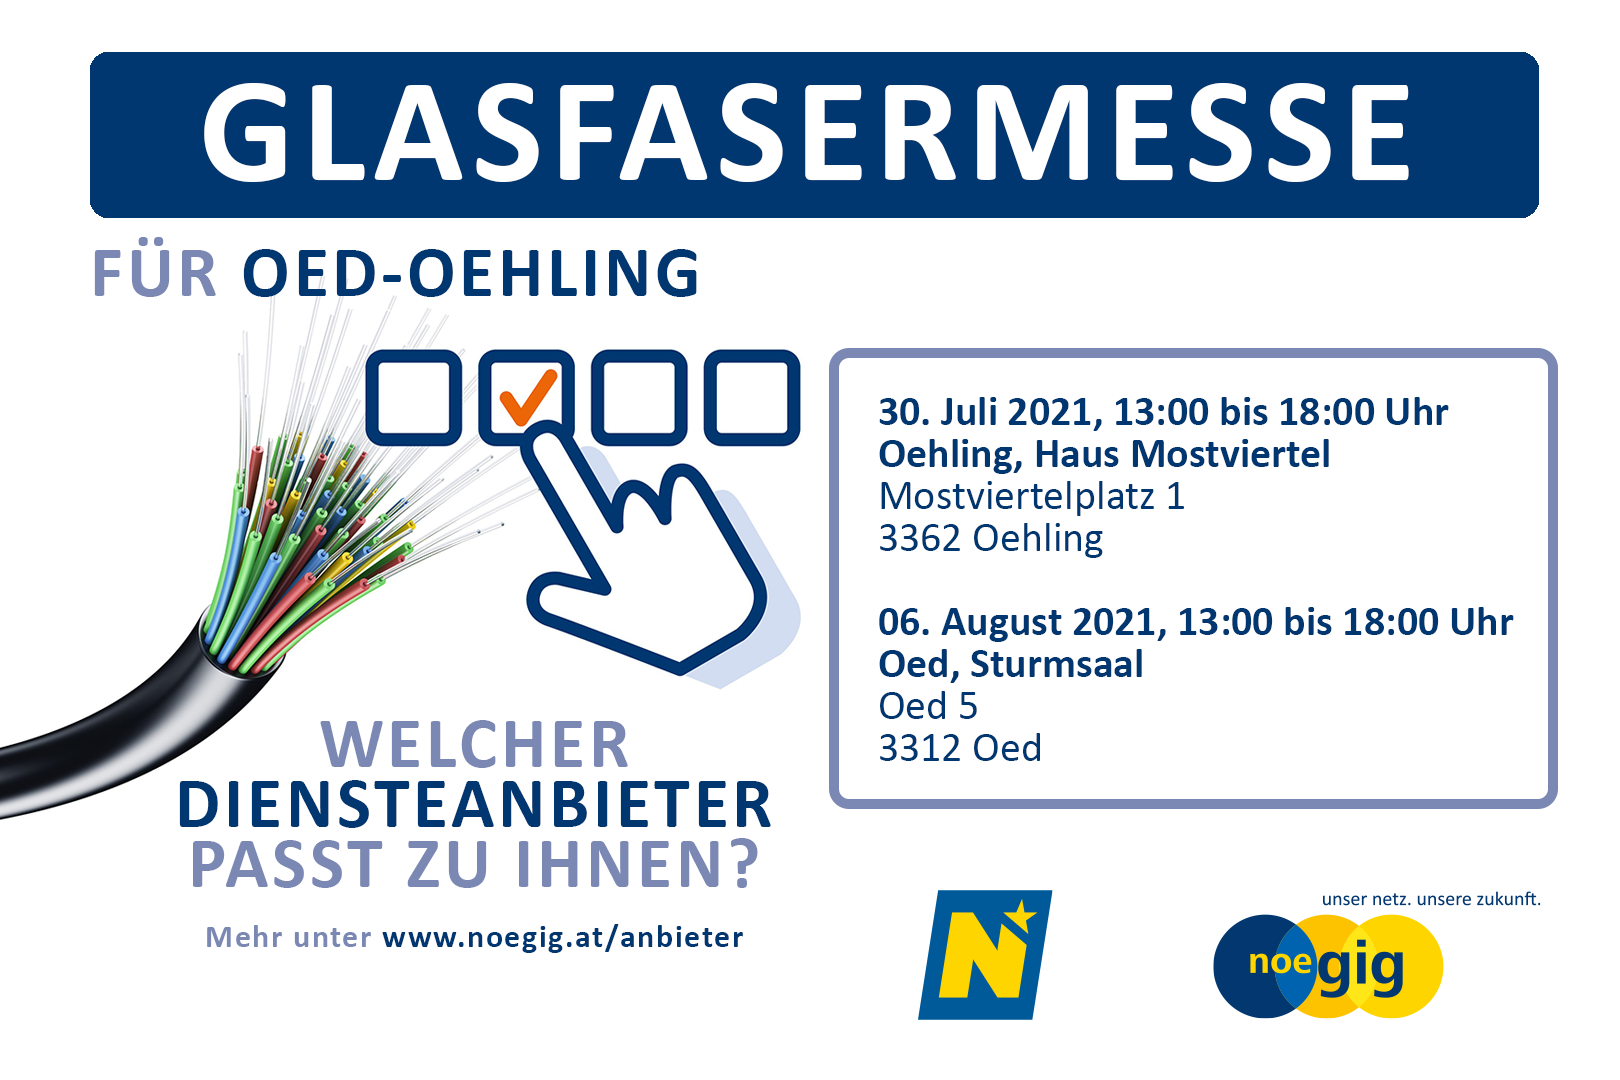 Inserat_Glasfasermessen_Oed_Oehling_2021-07.png